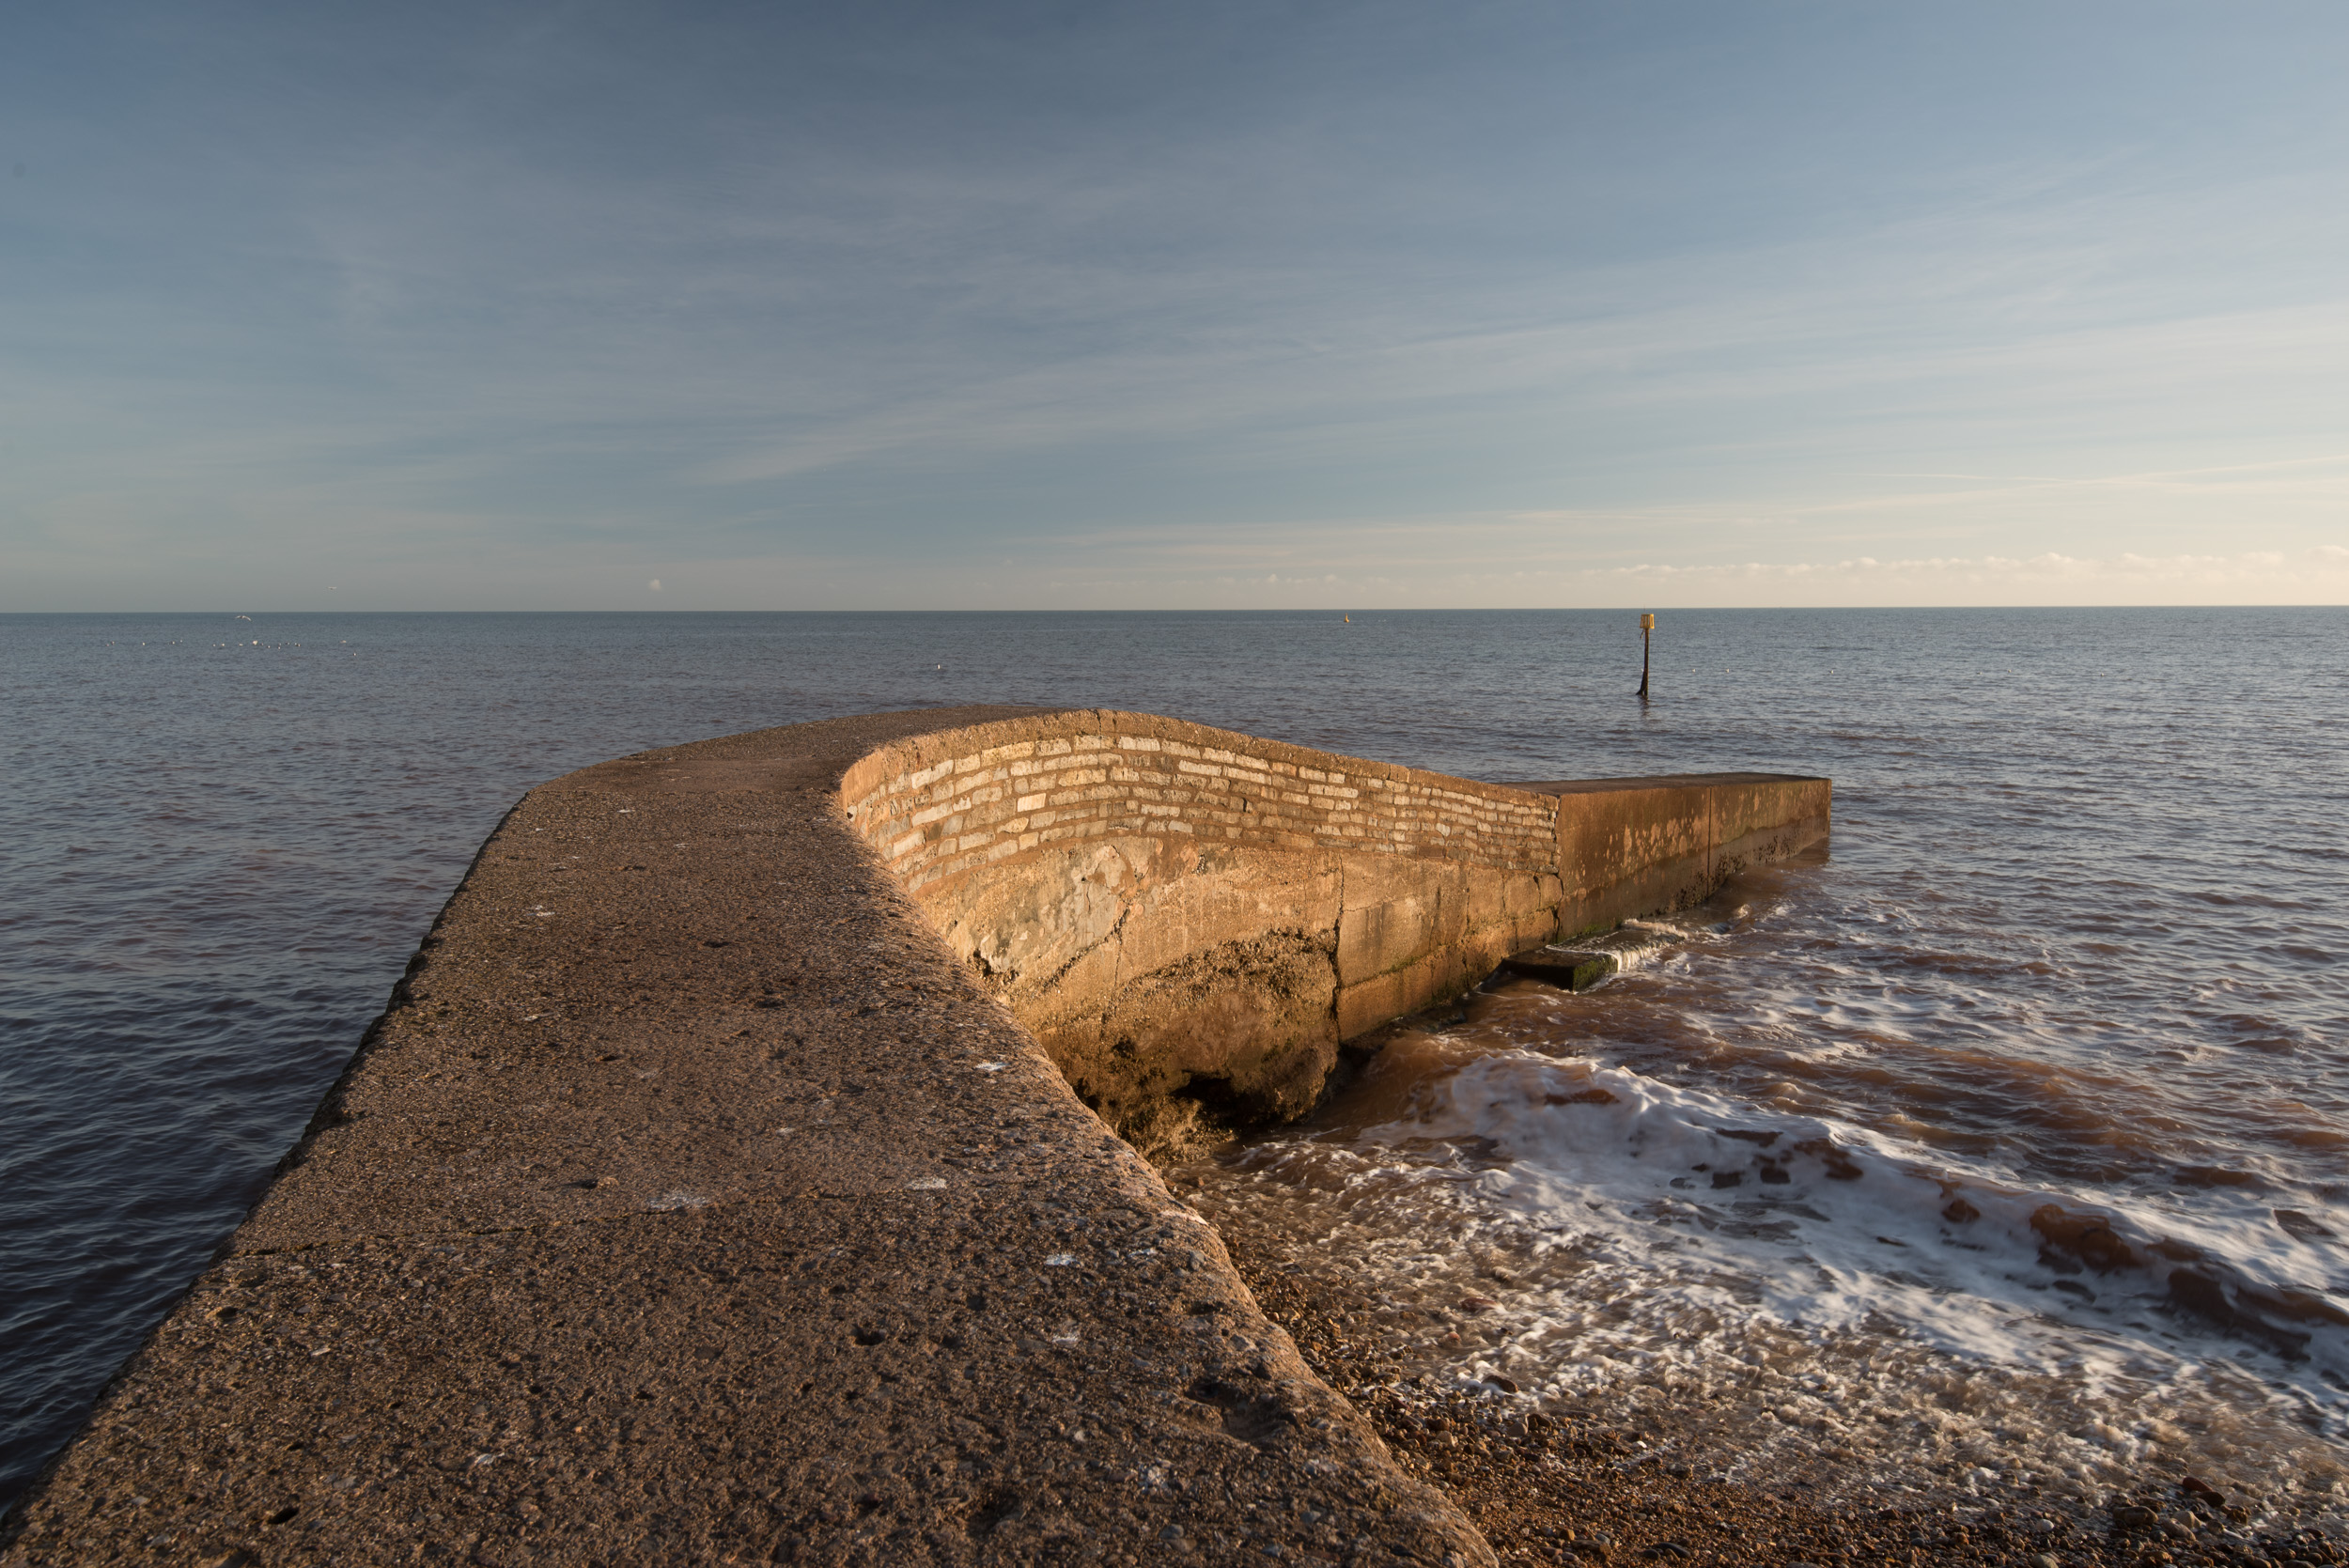 The addition of the polariser reduces the reflections on the groyne and brings out a little more detail in the sky. (Image unprocessed).